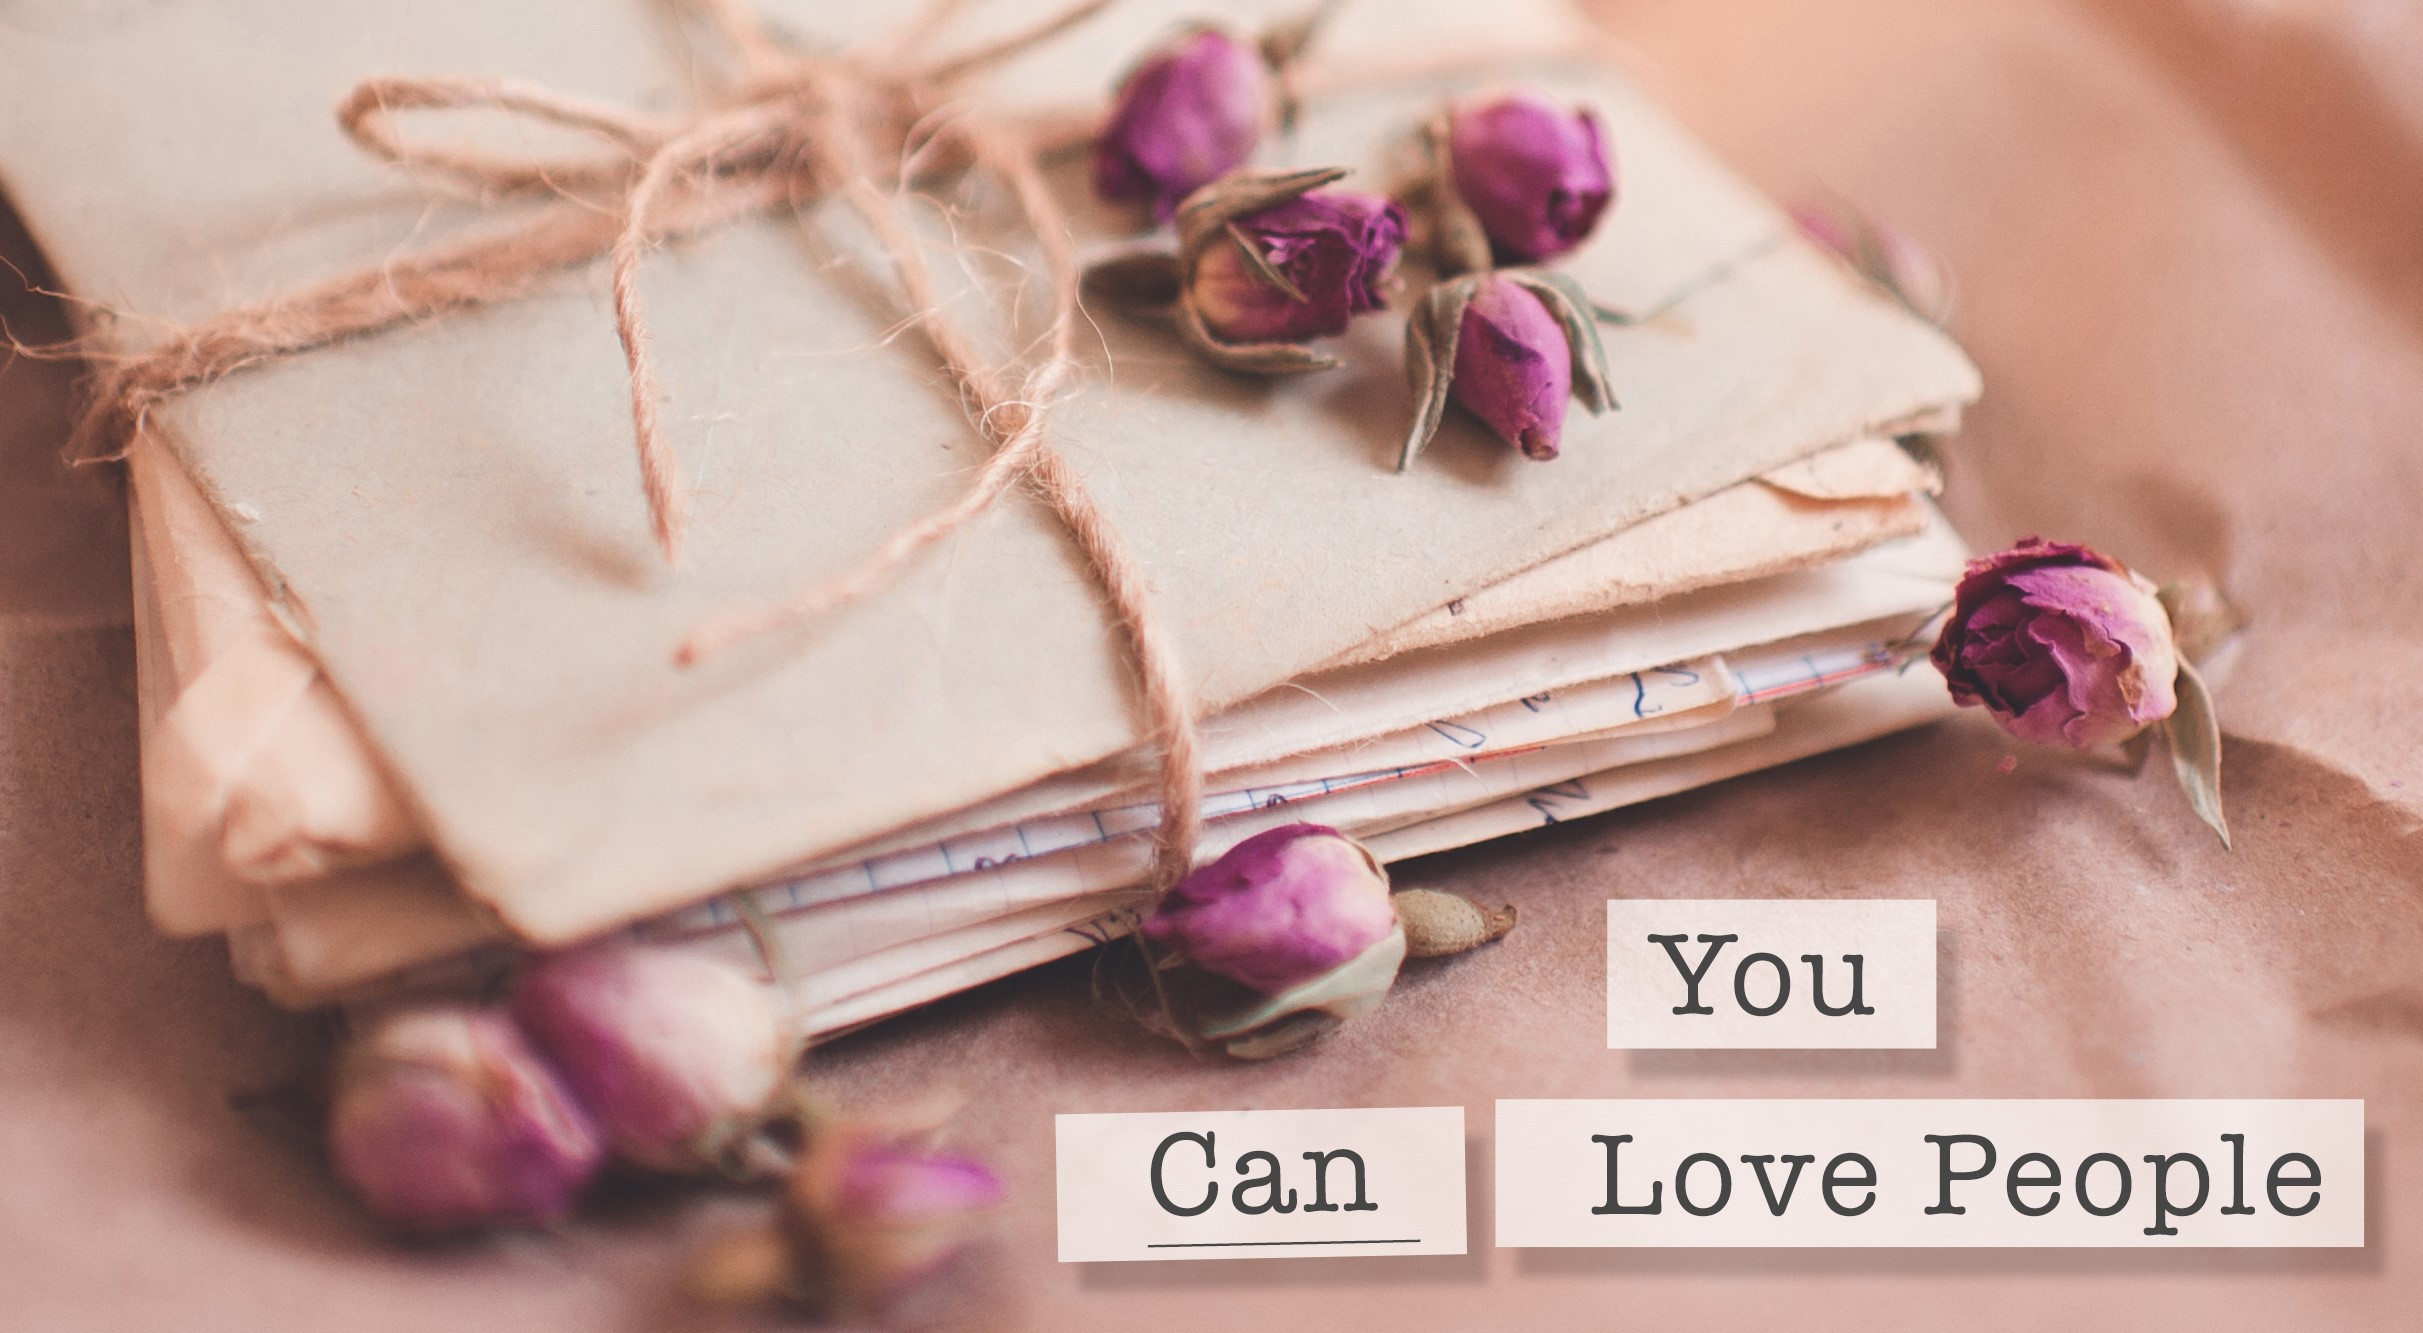 You Can Love People